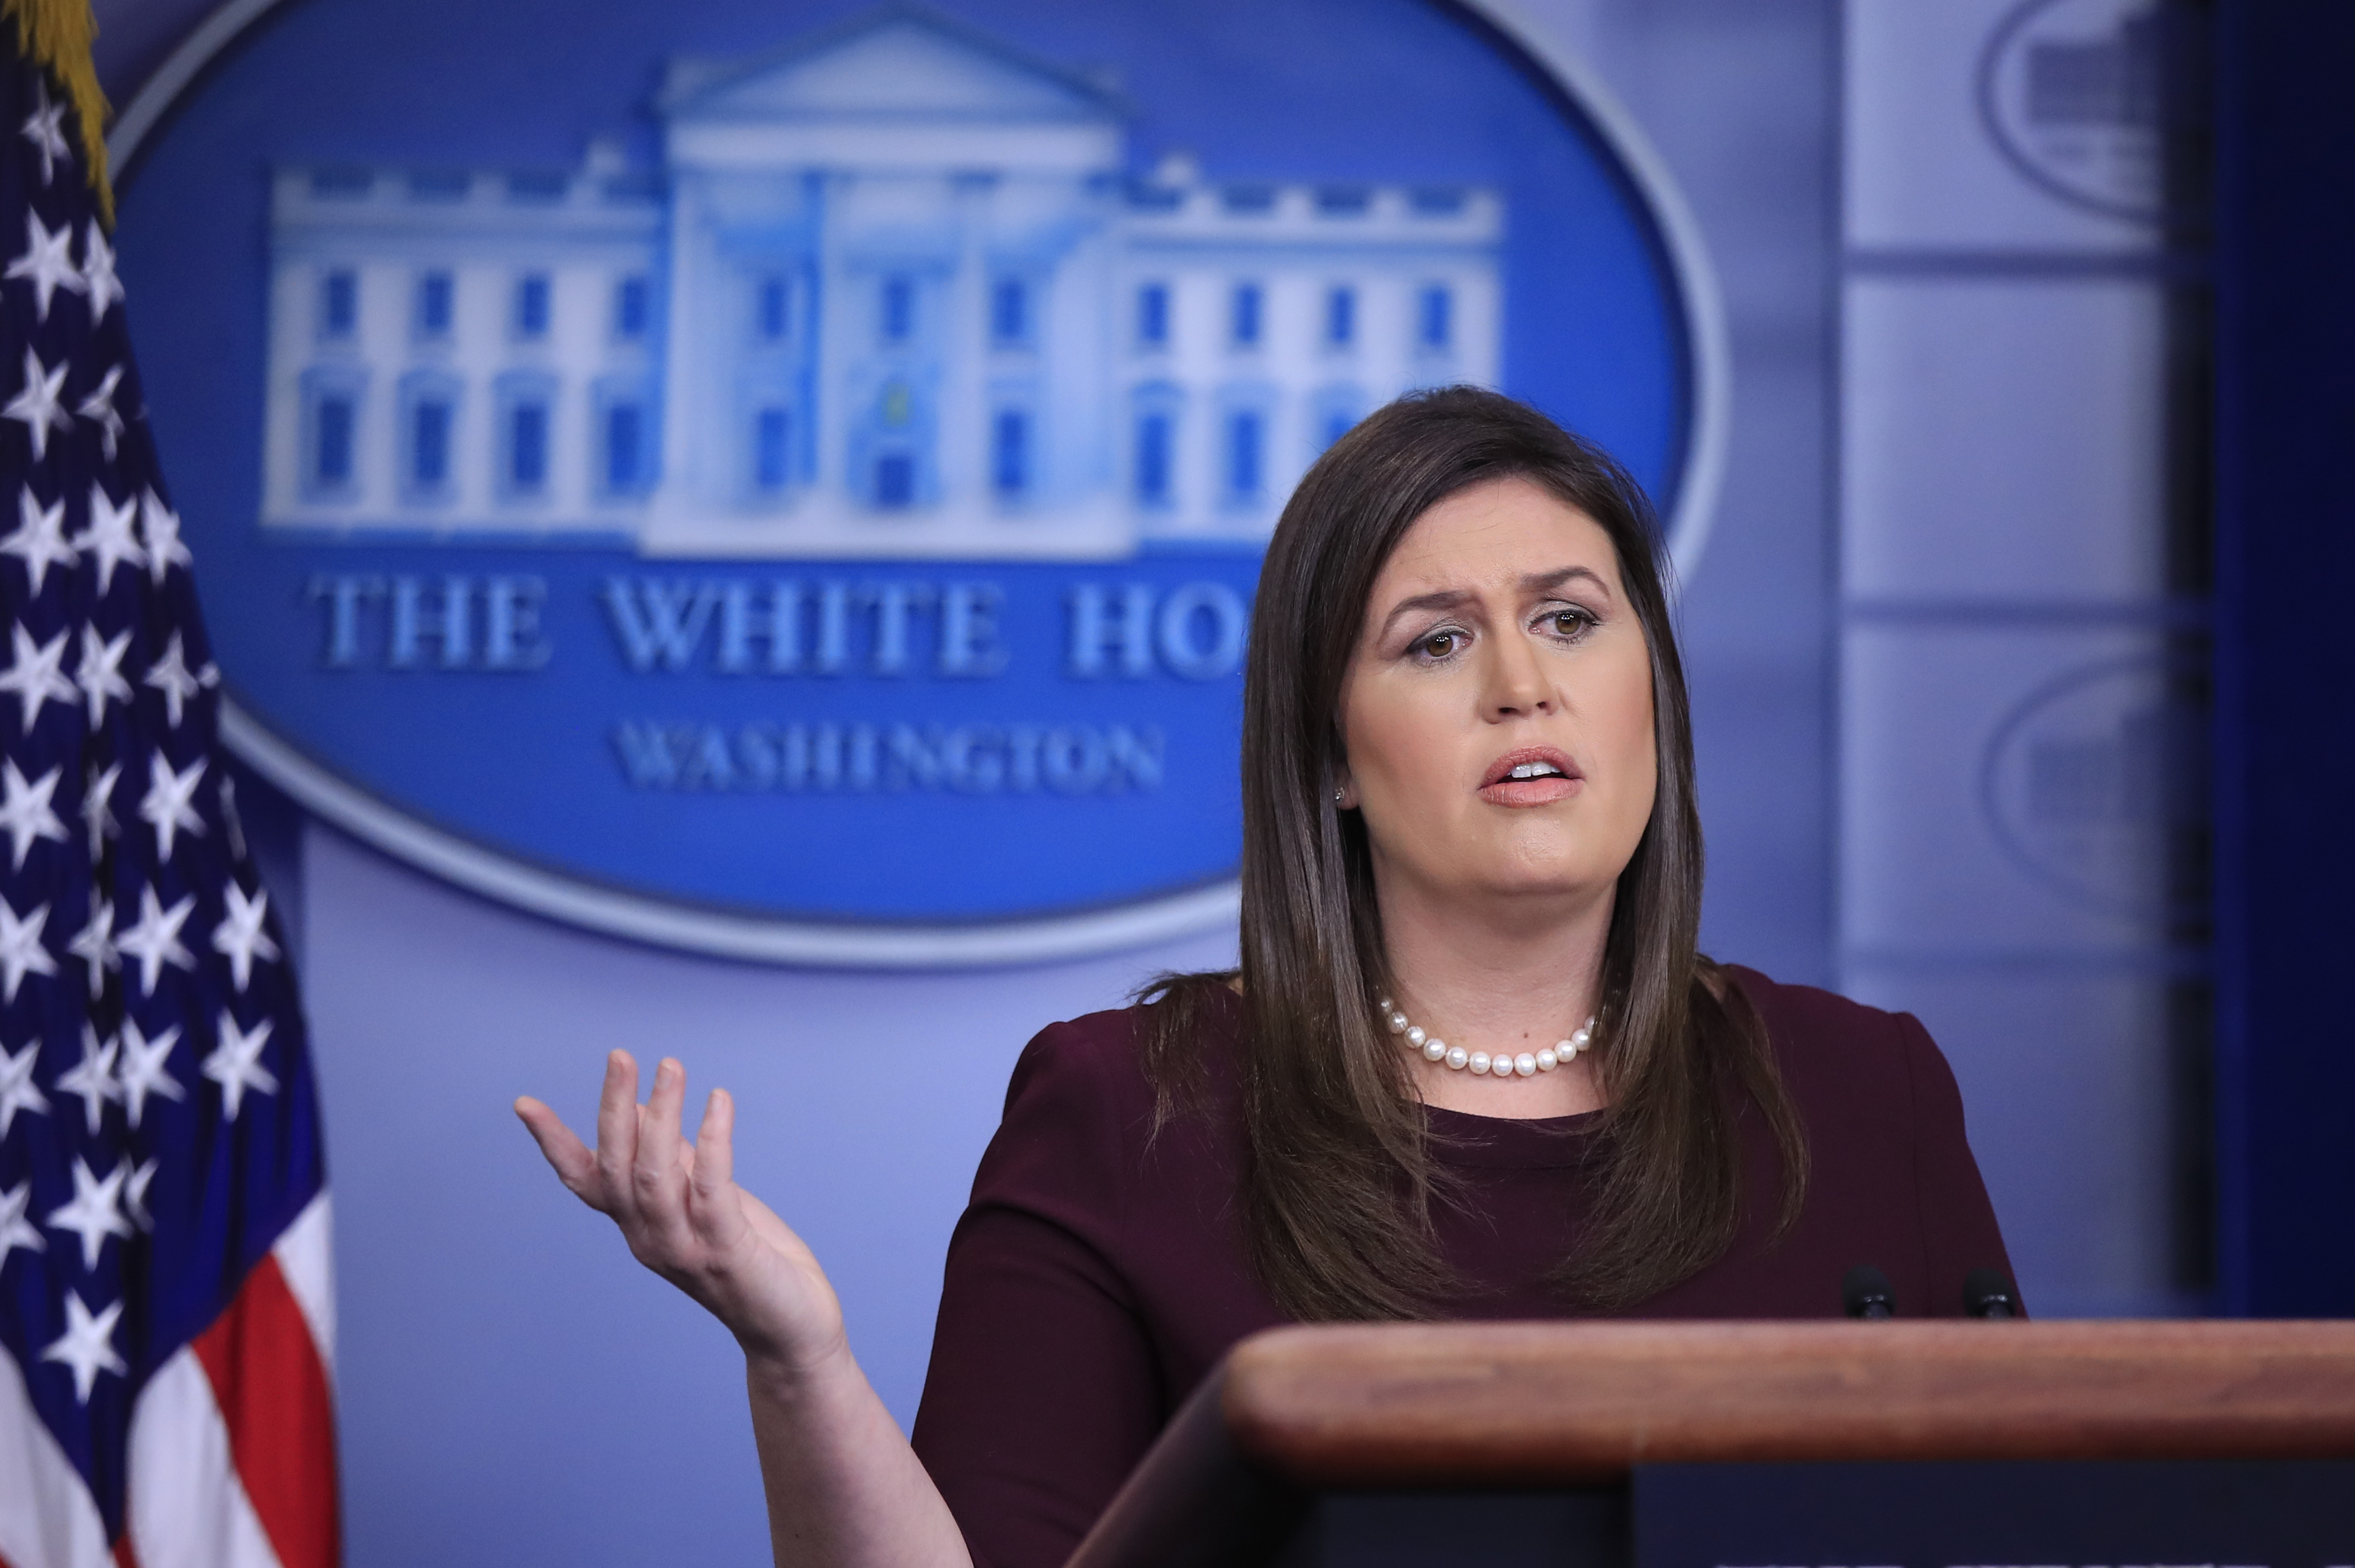 9 Times Sarah Sanders Straight Up Lied to the Press